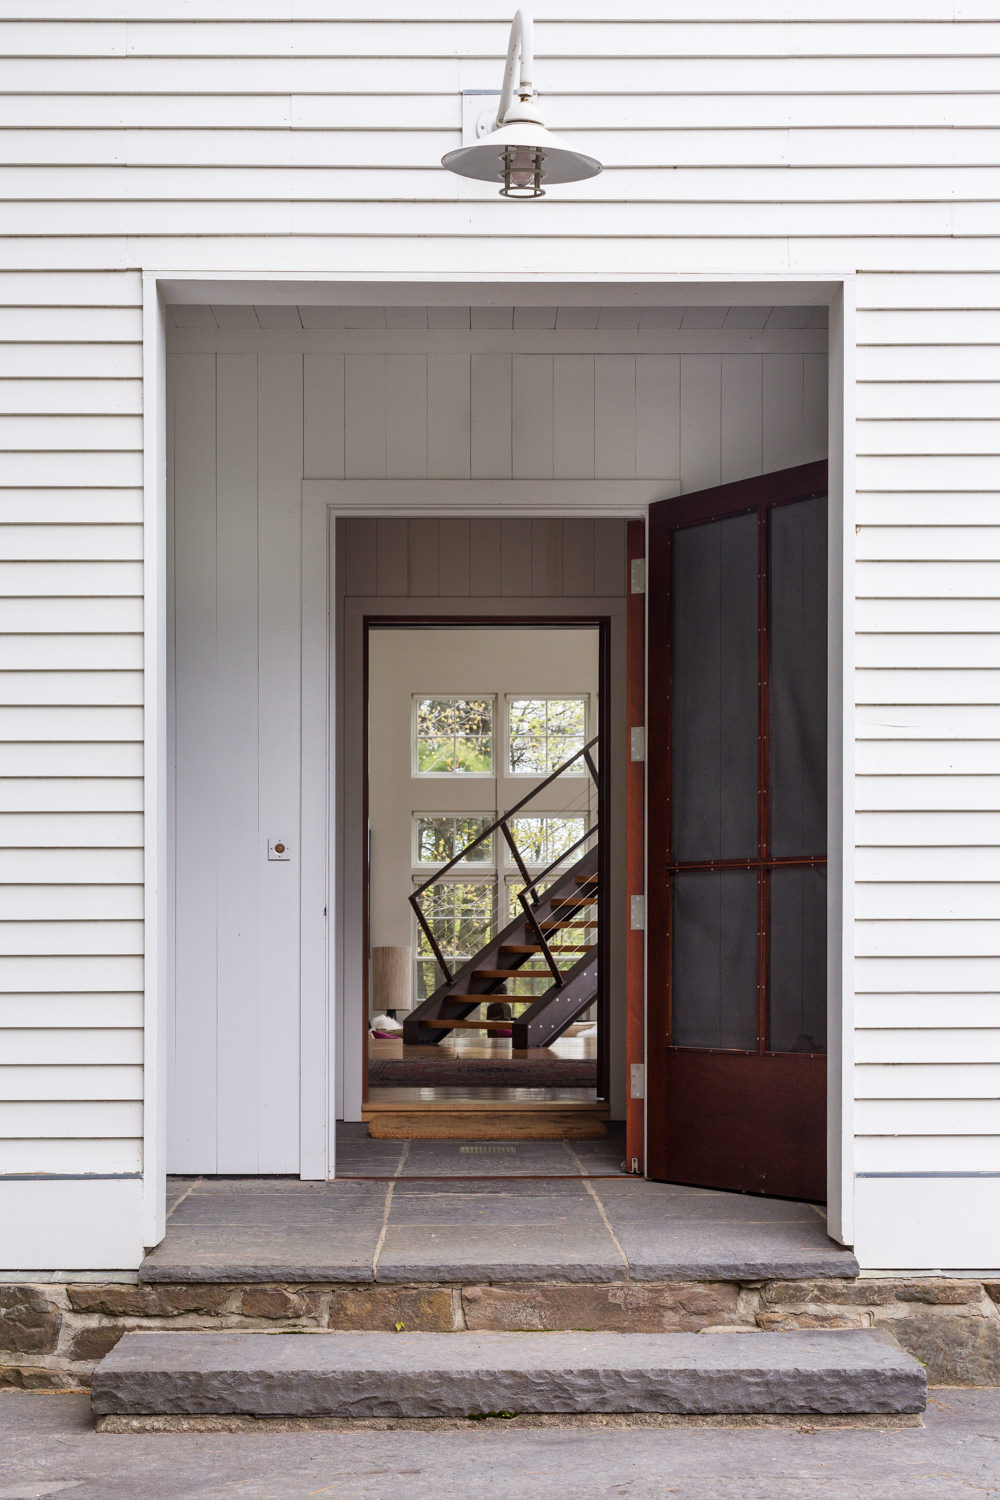 Entrance to the Woods Hollow residence by Vermont professional photographer Stina Booth